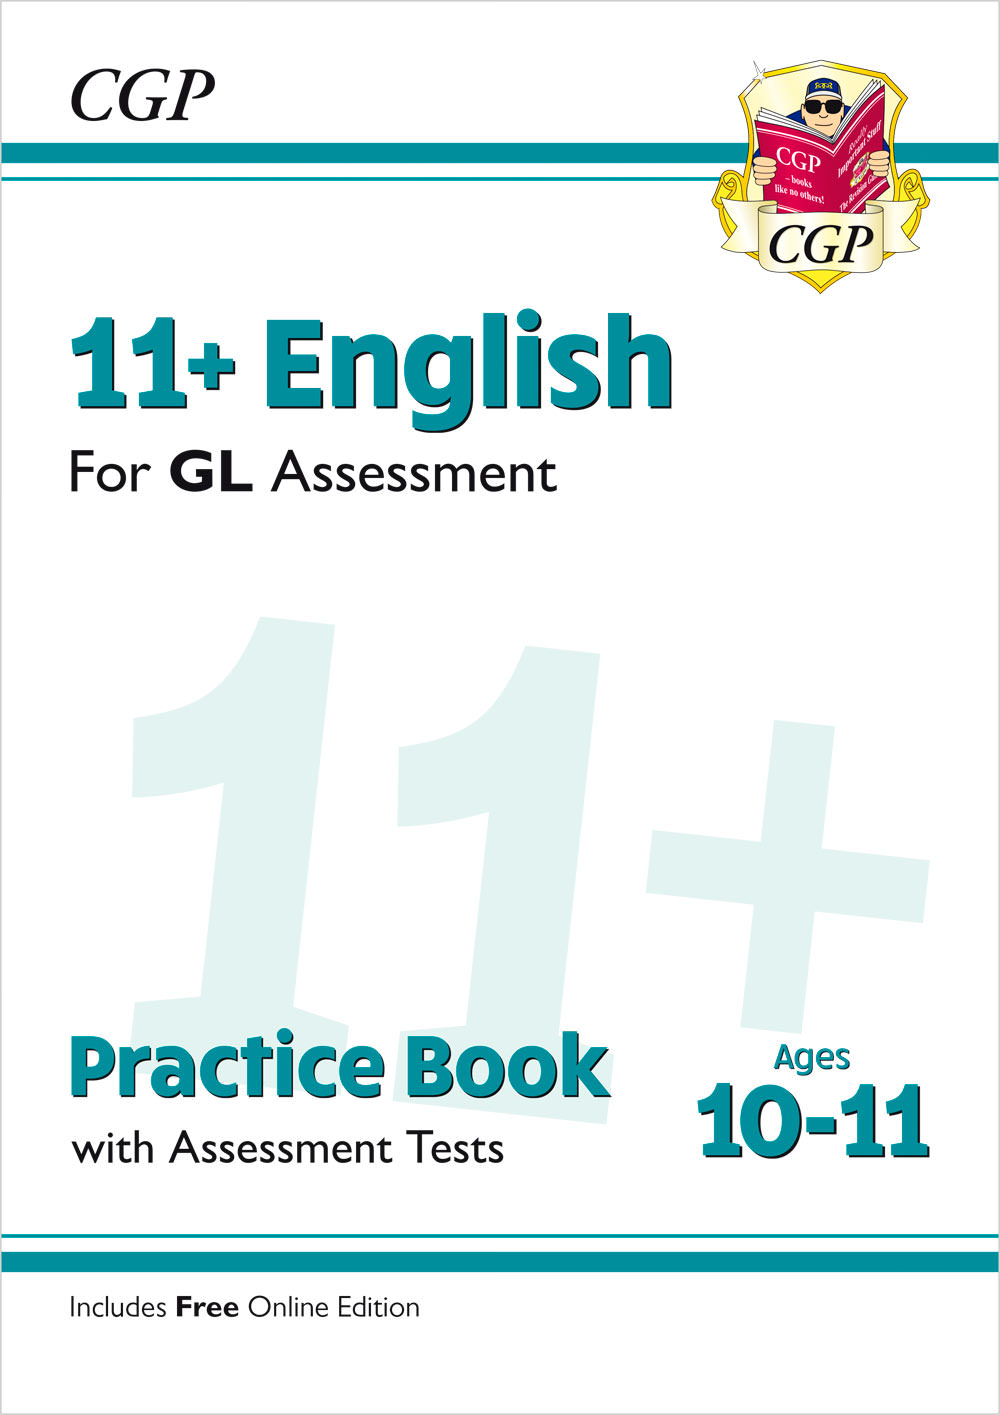 E6QE2 - New 11+ GL English Practice Book & Assessment Tests - Ages 10-11 (with Online Edition)